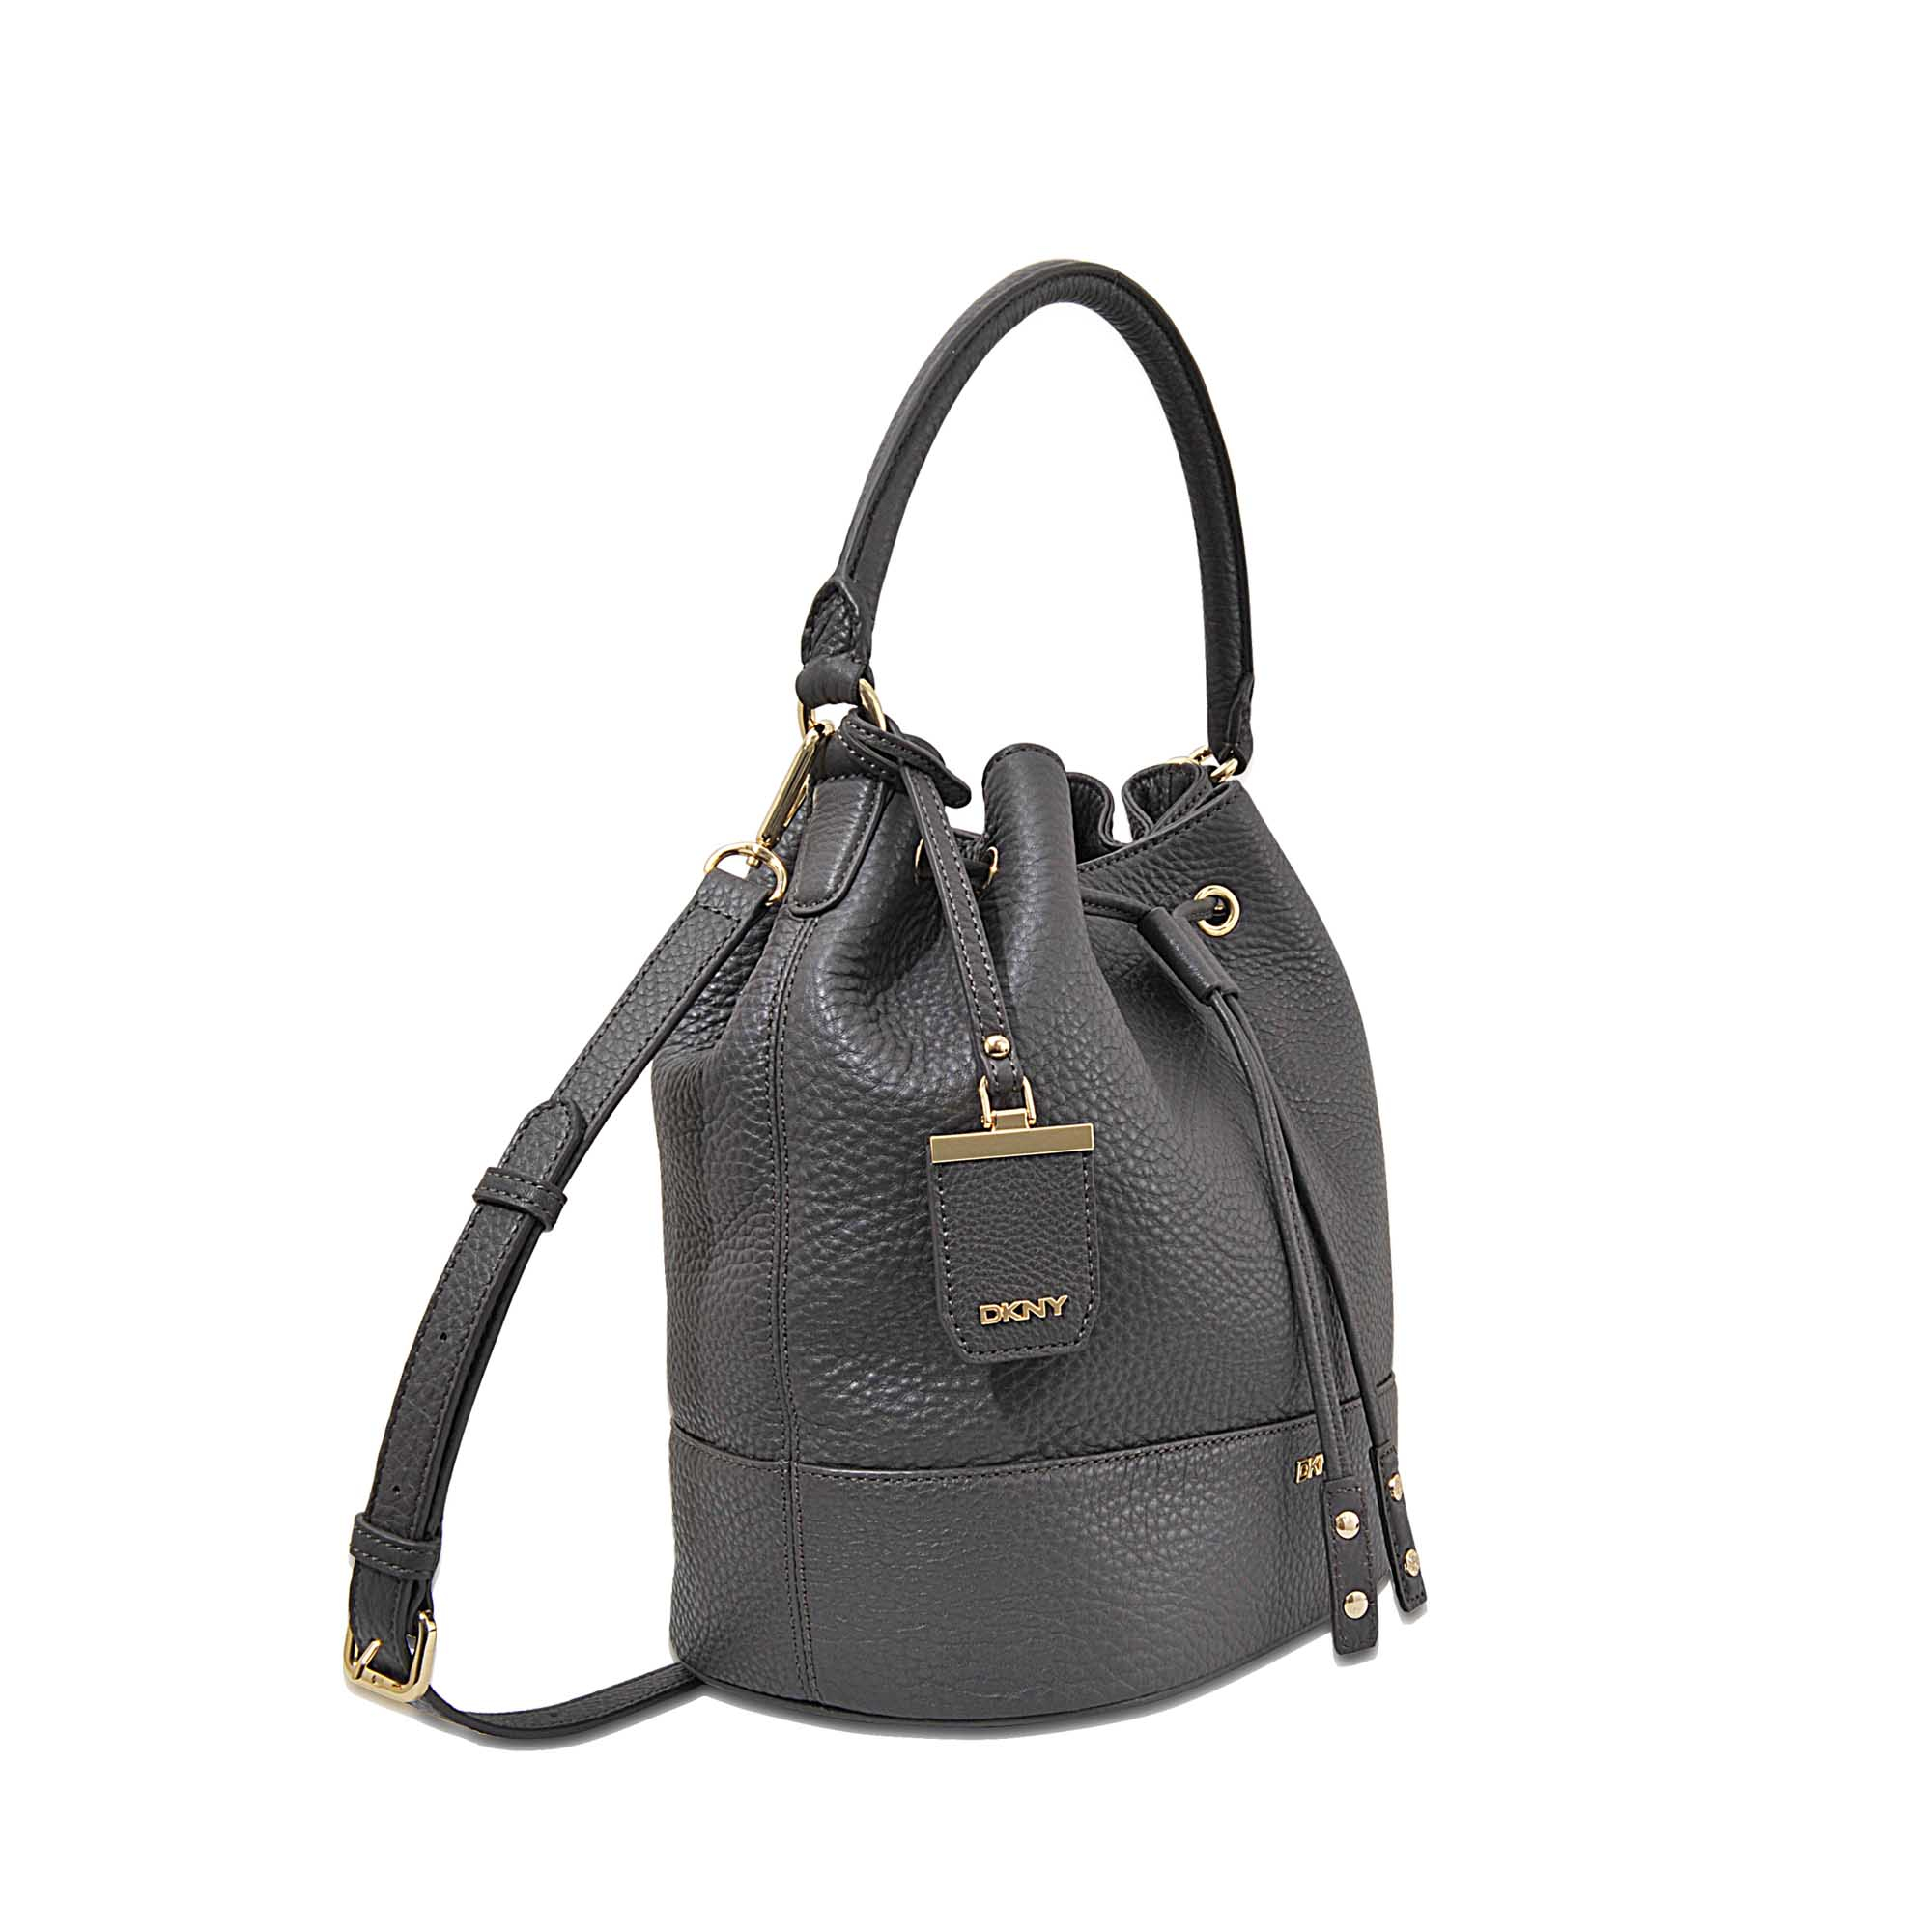 62366112c2fc Lyst tribeca bucket bag in black jpg 2000x2000 Coach tribeca bucket bag  leather tote